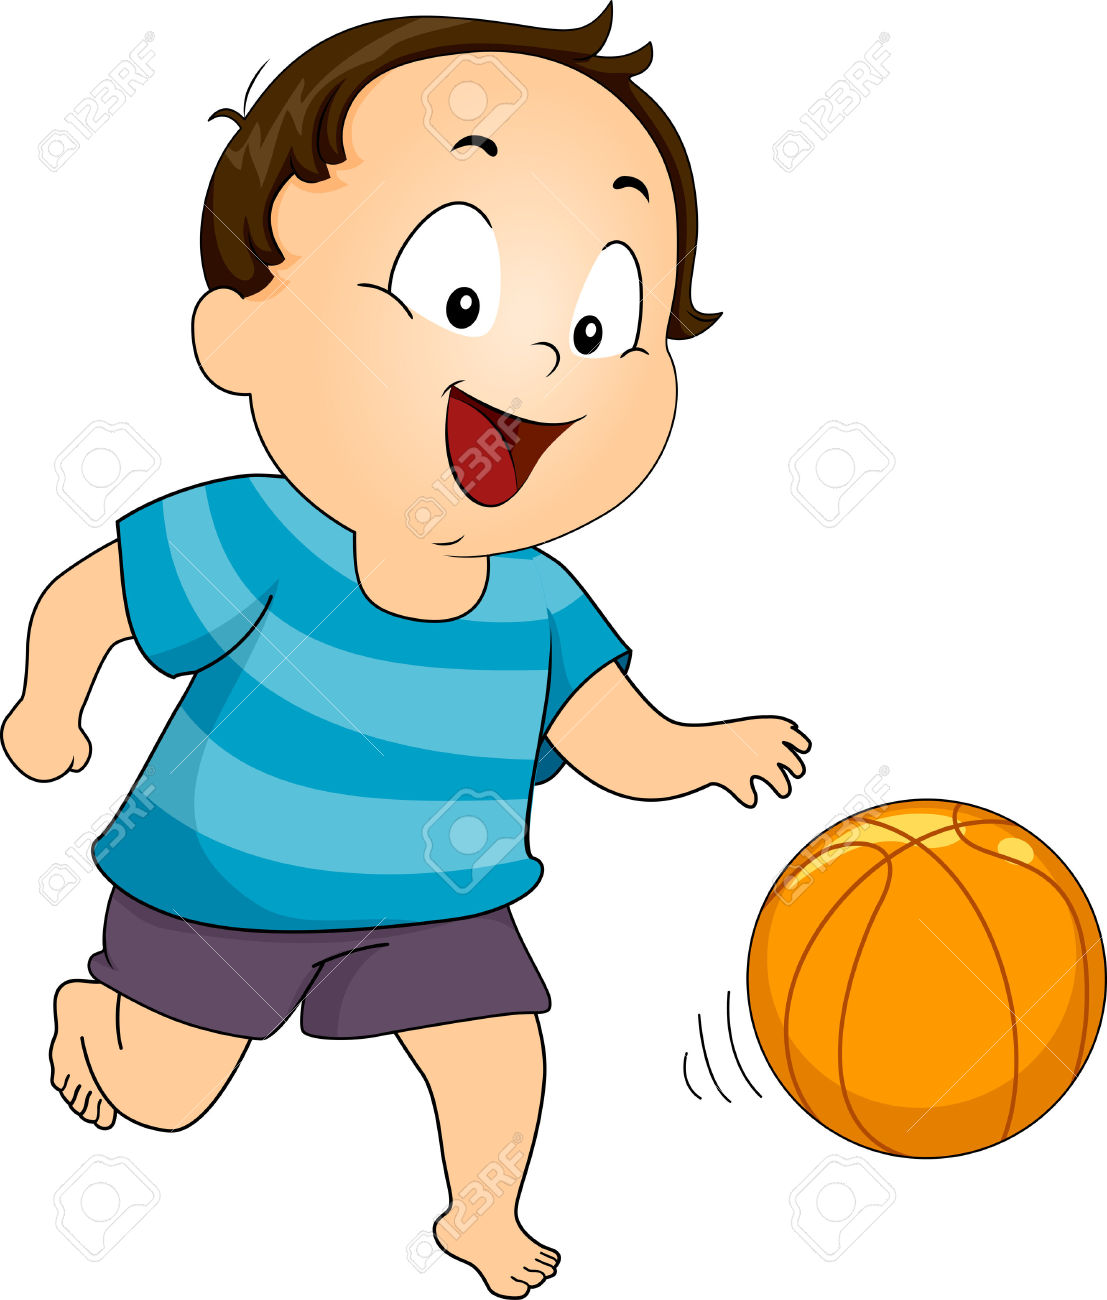 Illustration Of A Young Boy Playing With A Basketball Stock Photo.